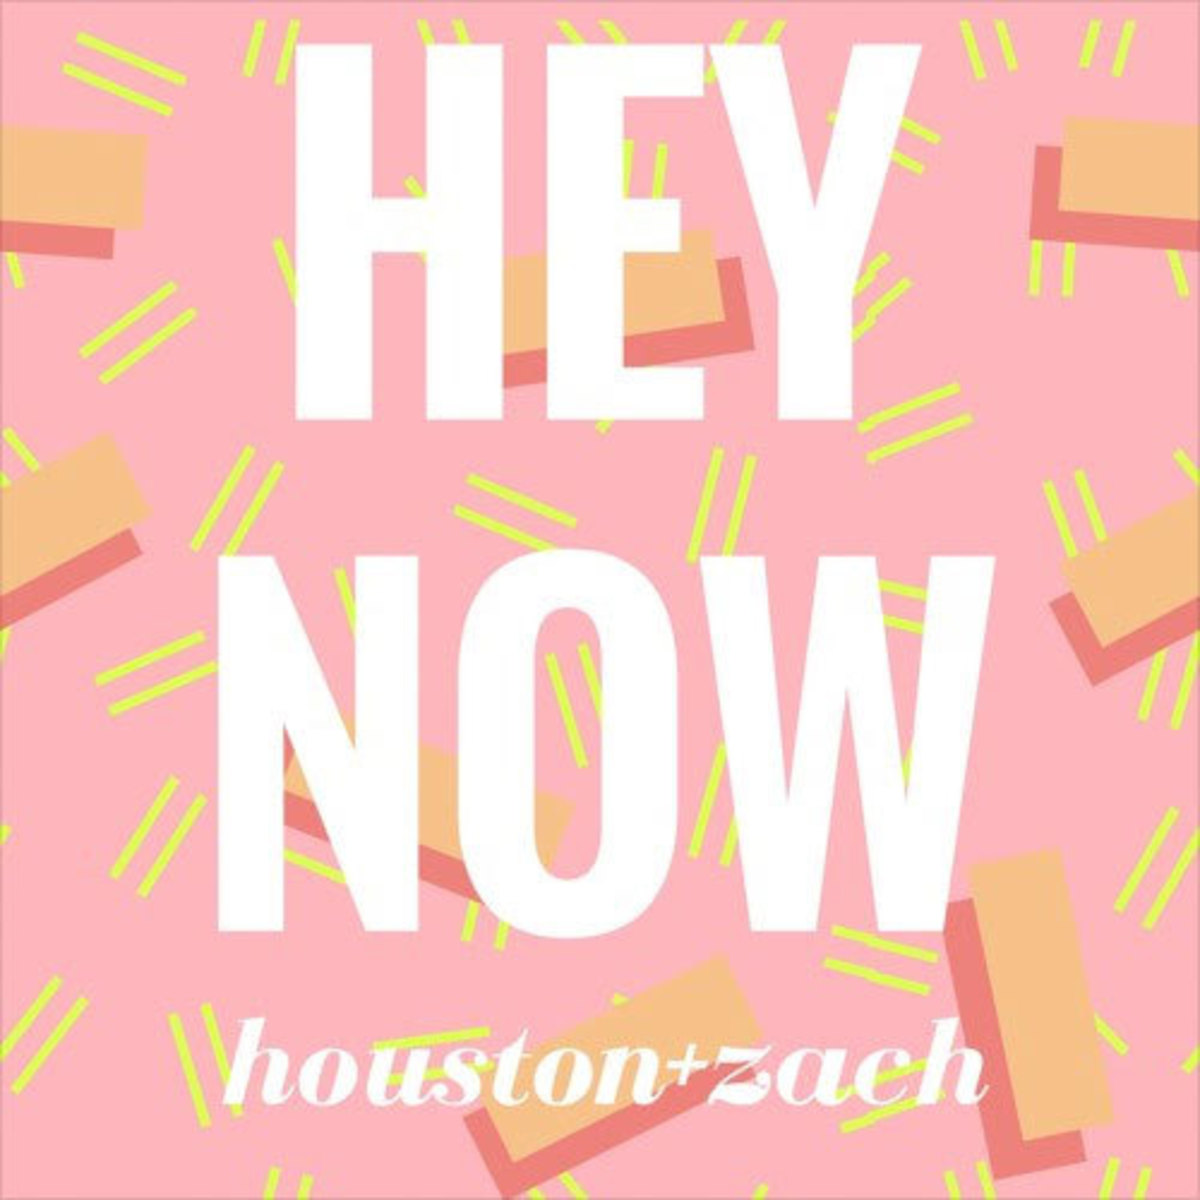 houston-kendrick-hey-now.jpg